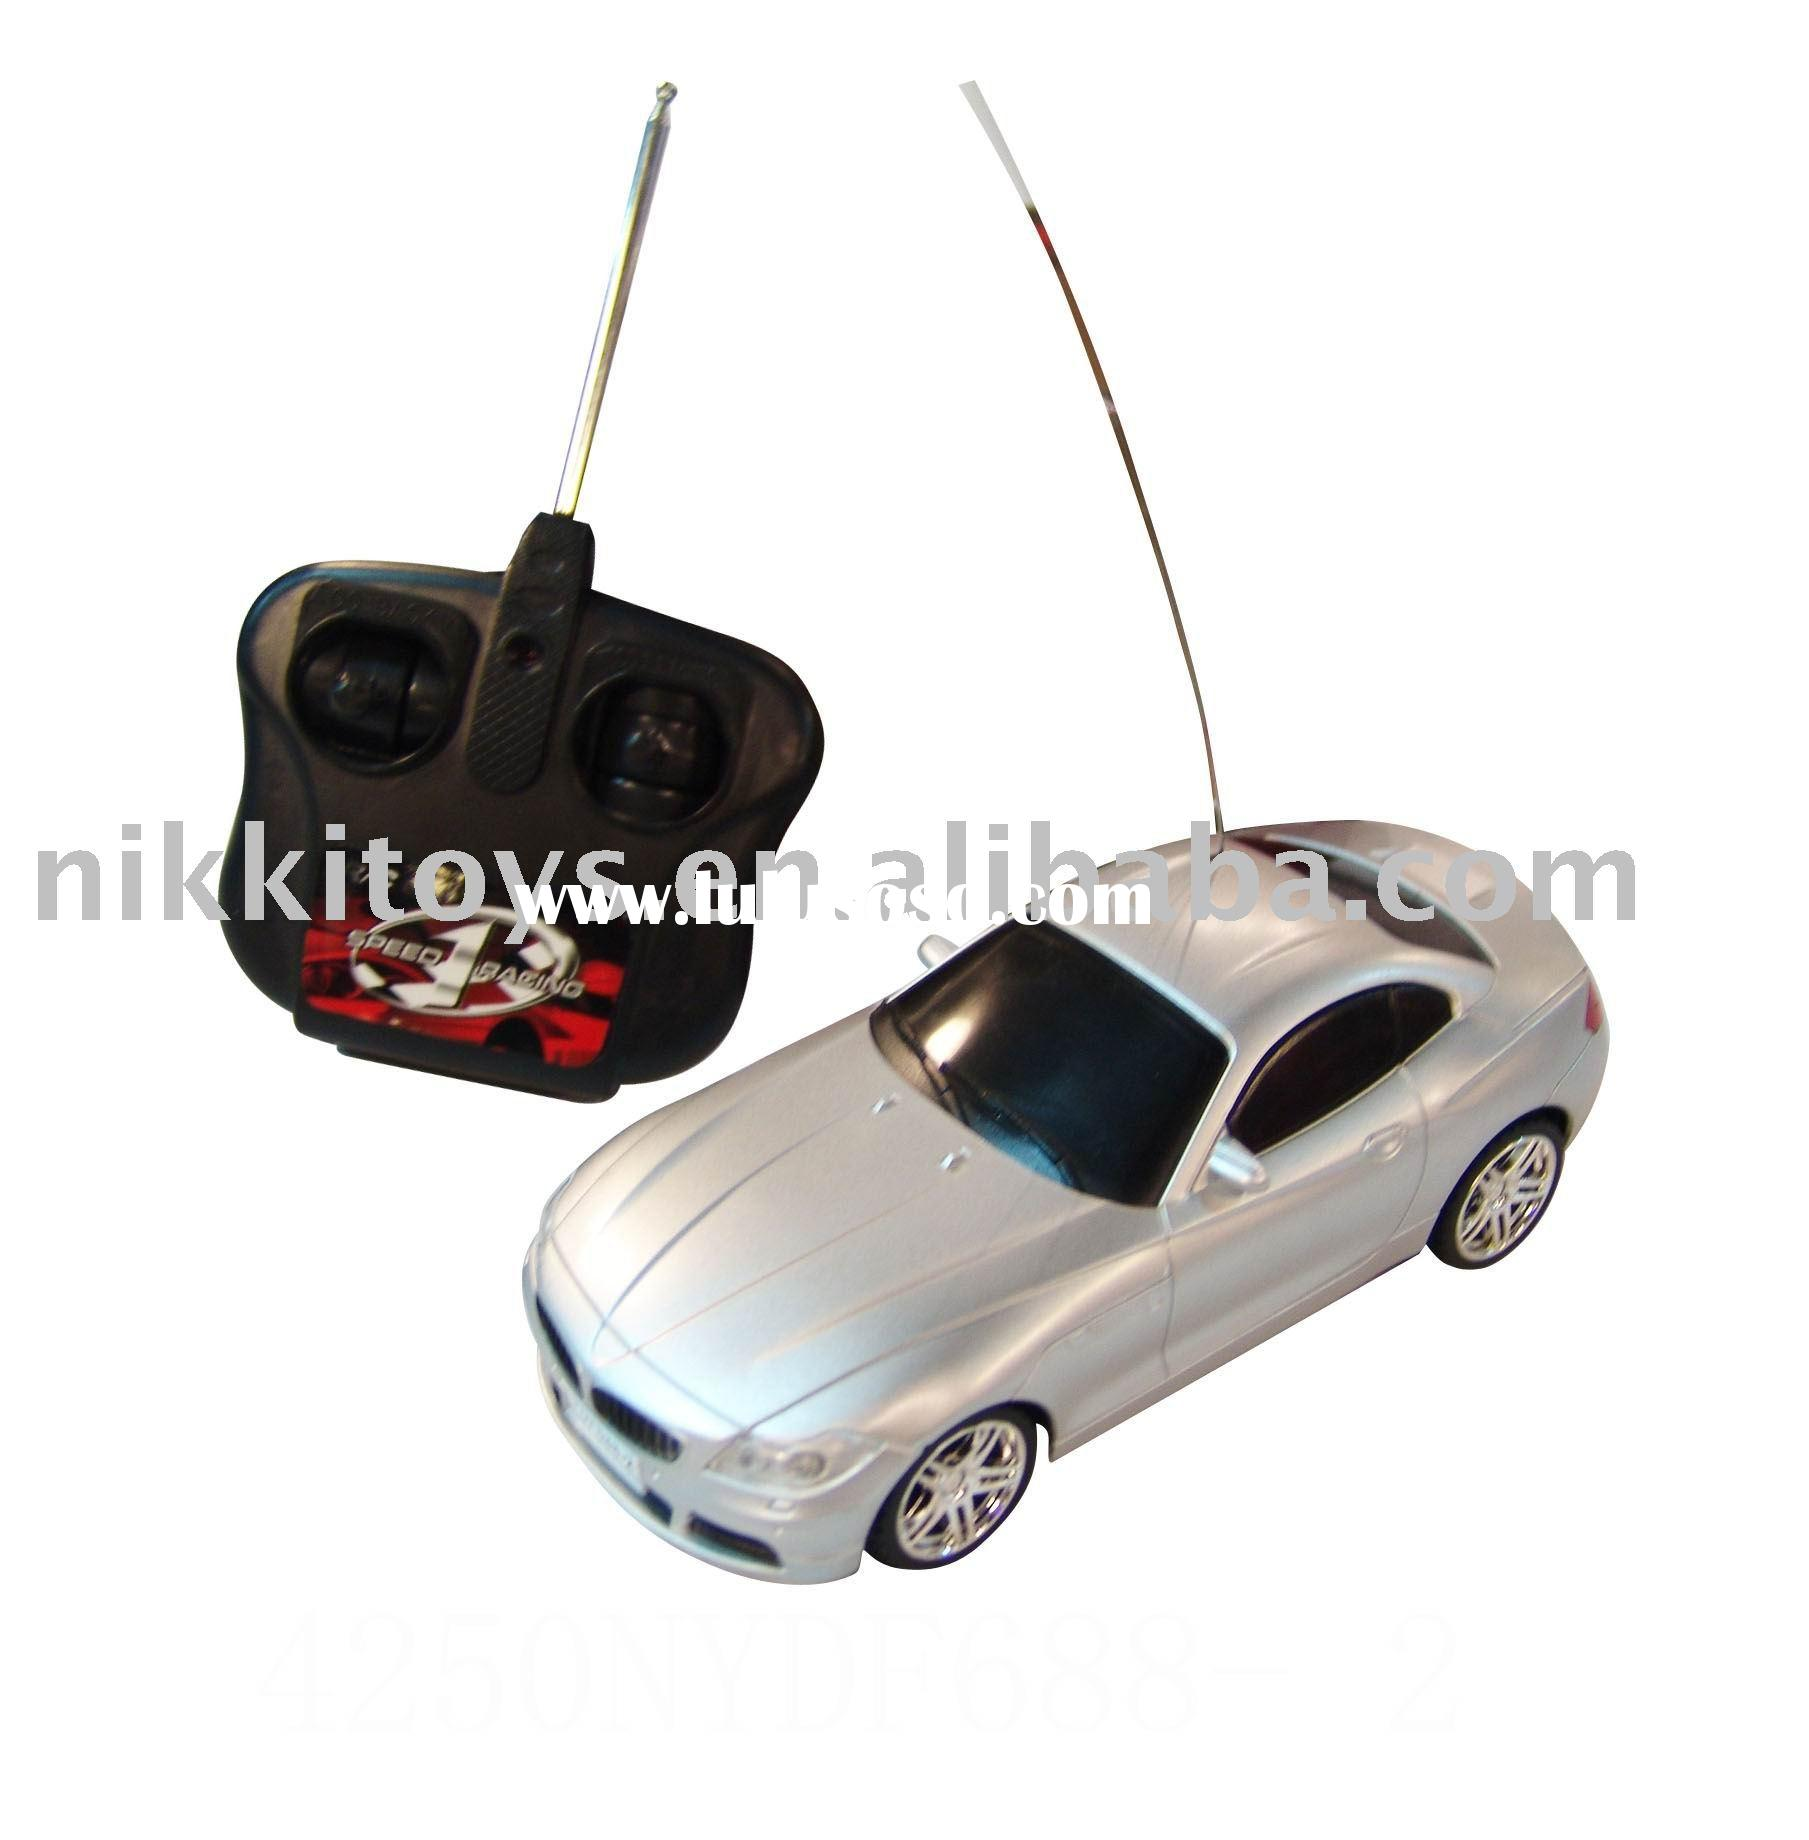 4 Channel Radio Control Car